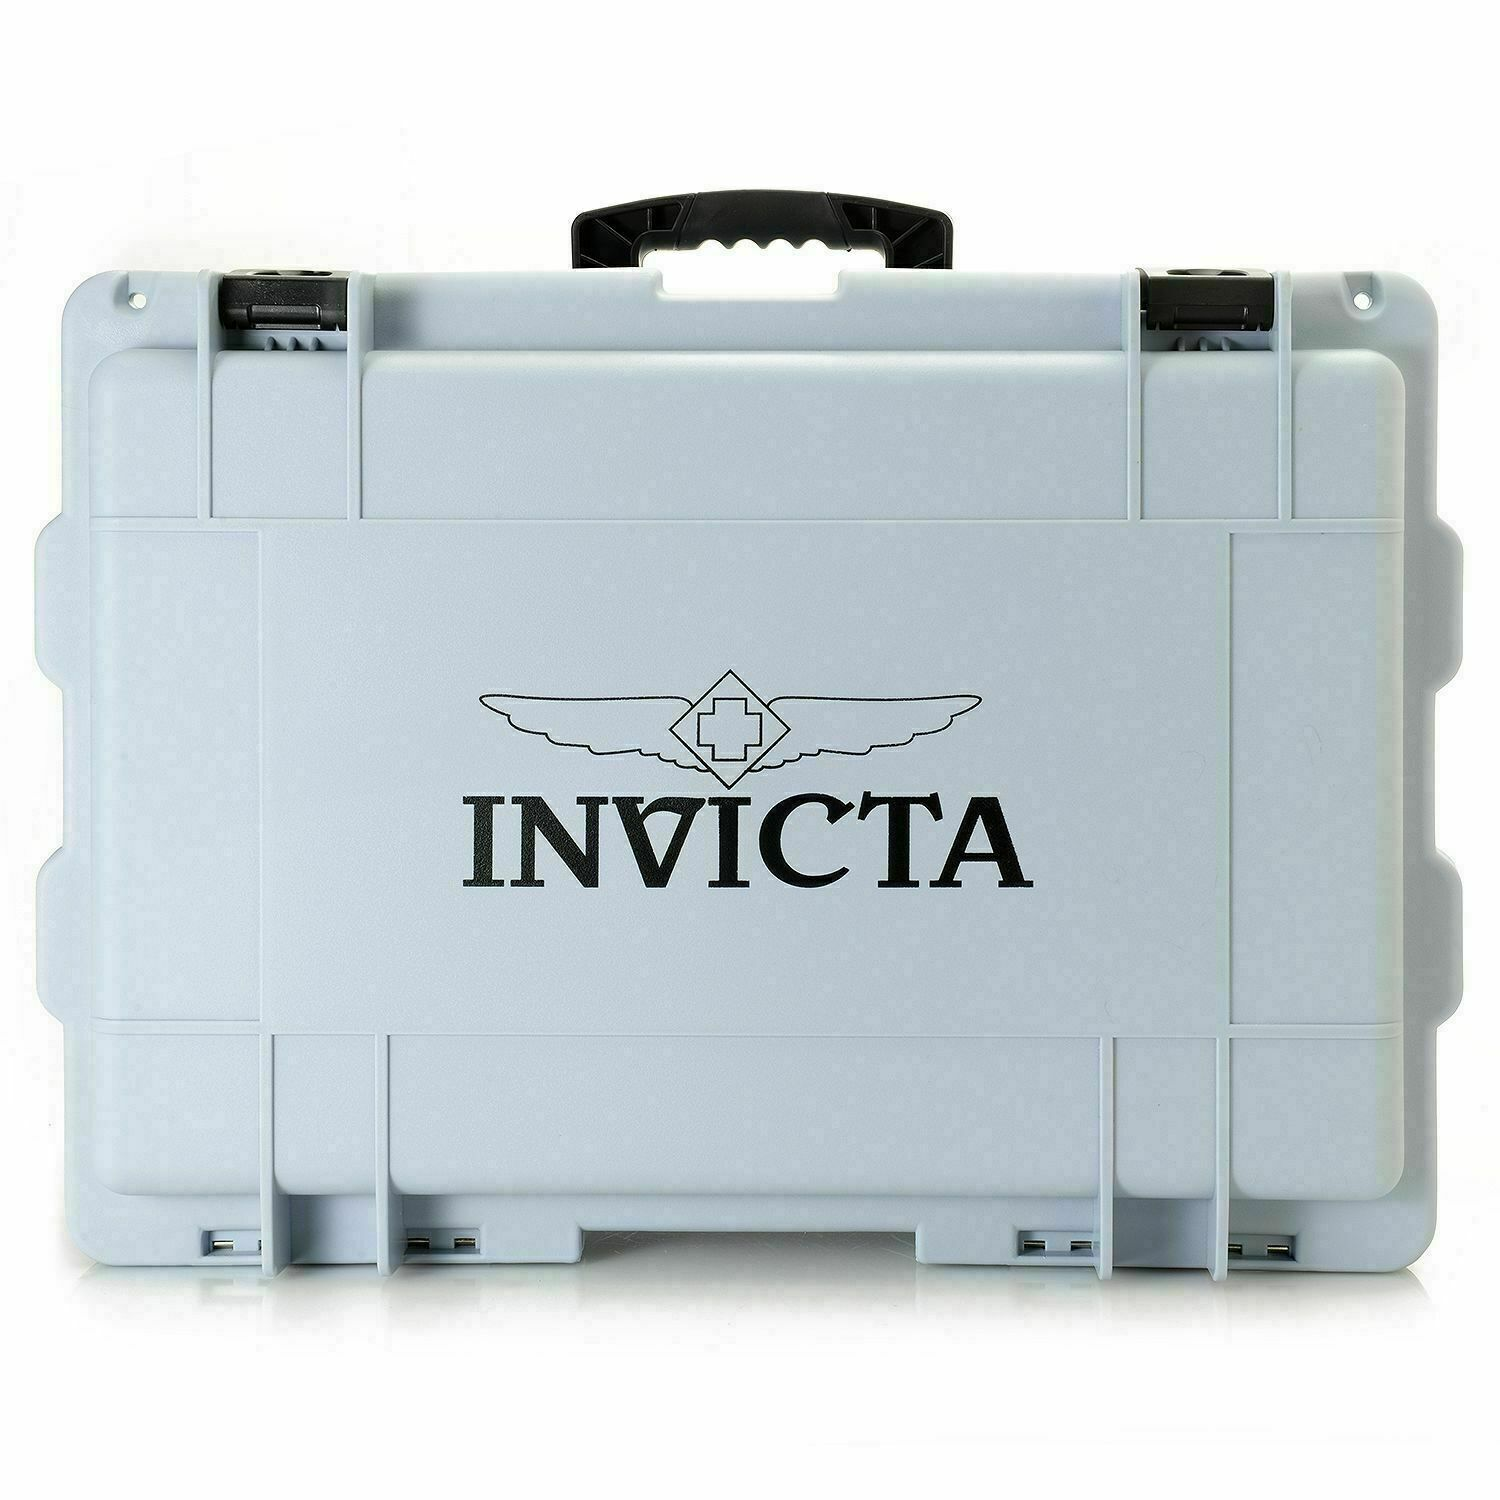 Invicta-Dive-Watch-Case-Waterproof-Collector-039-s-Suitcase-50-Slots thumbnail 9